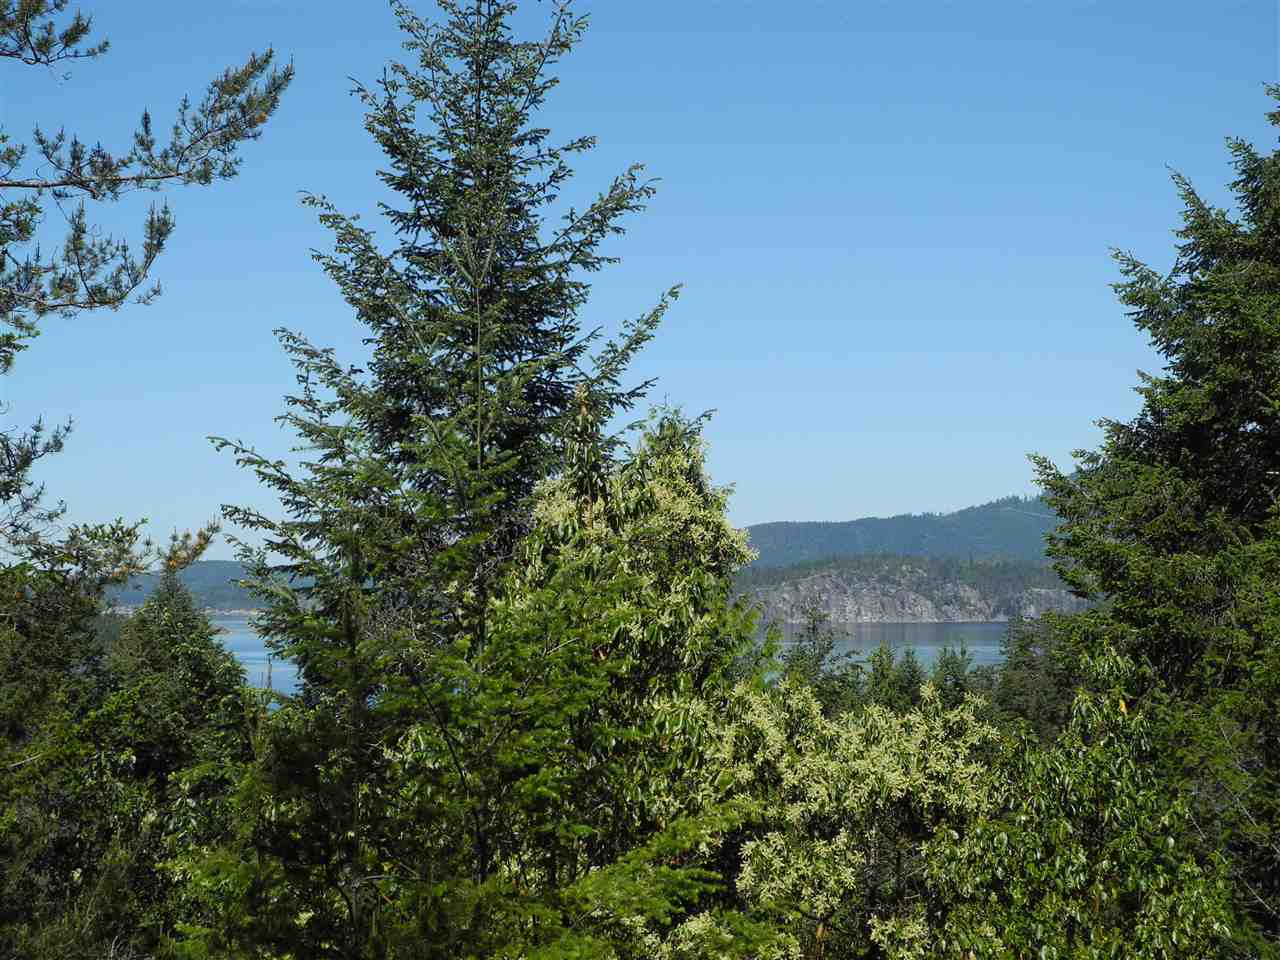 Photo 9: 4436 MCLINTOCK Road in Pender Harbour: Pender Harbour Egmont House for sale (Sunshine Coast)  : MLS(r) # R2068891